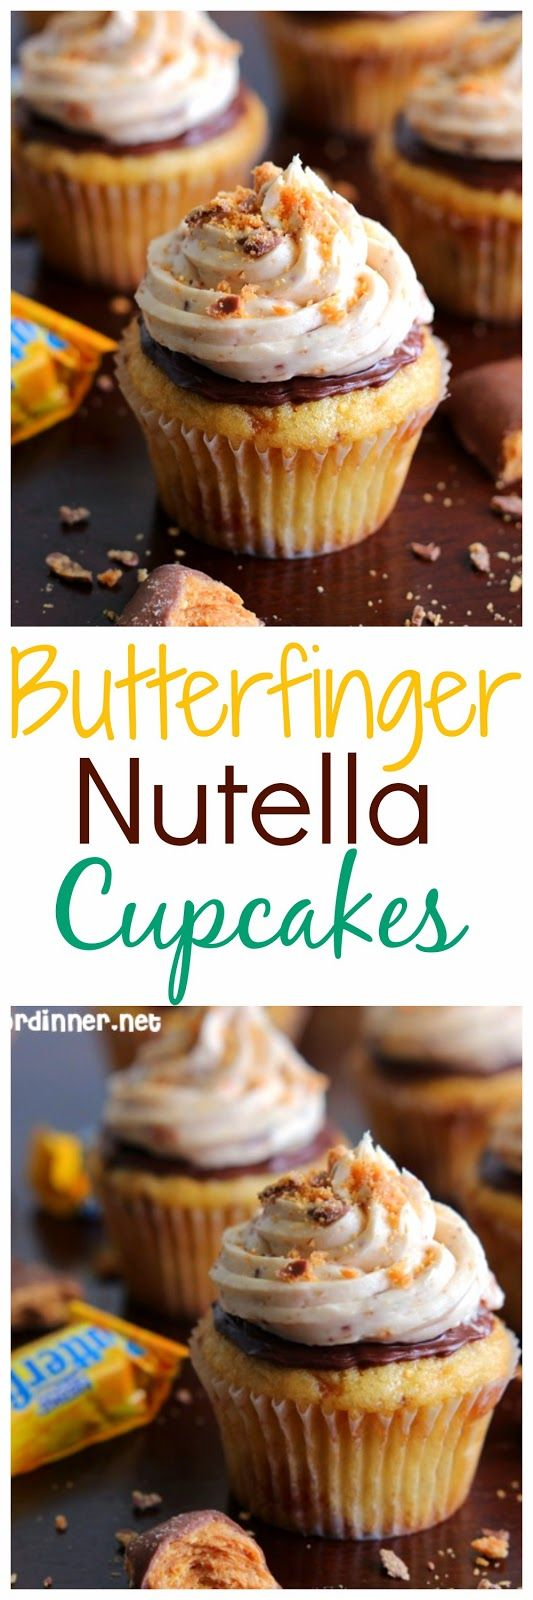 Butterfinger Nutella Cupcakes - Both the cupcake and frosting are loaded with crushed Butterfingers.  These are DIVINE.